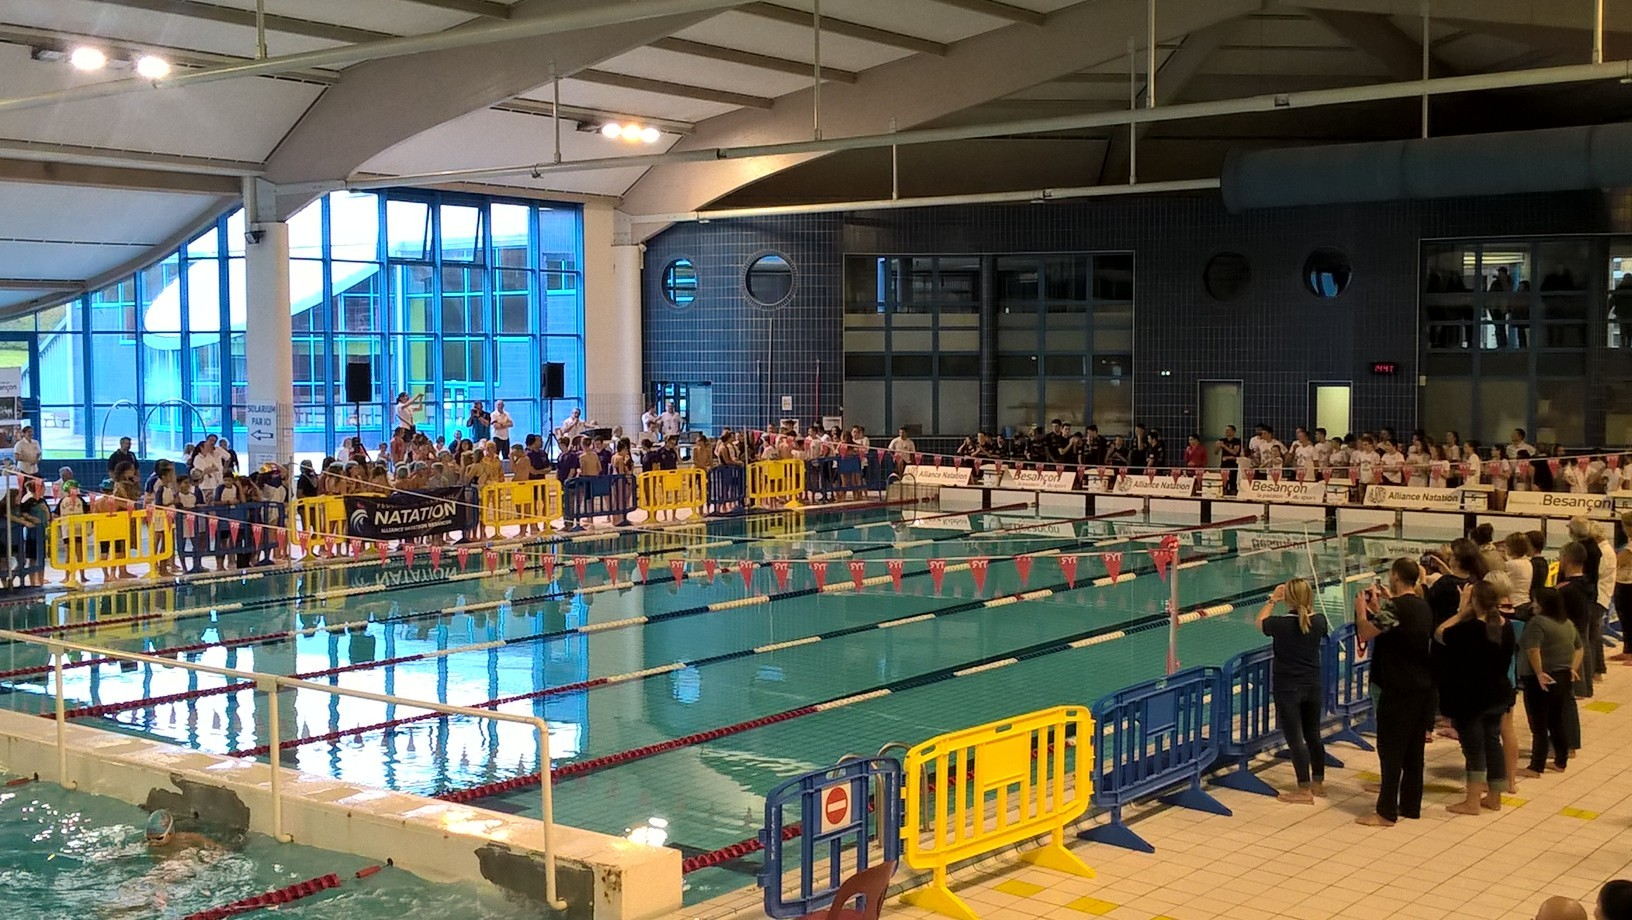 Natation vesoul noidans saison 2016 2017 abcnatation for Piscine de vesoul